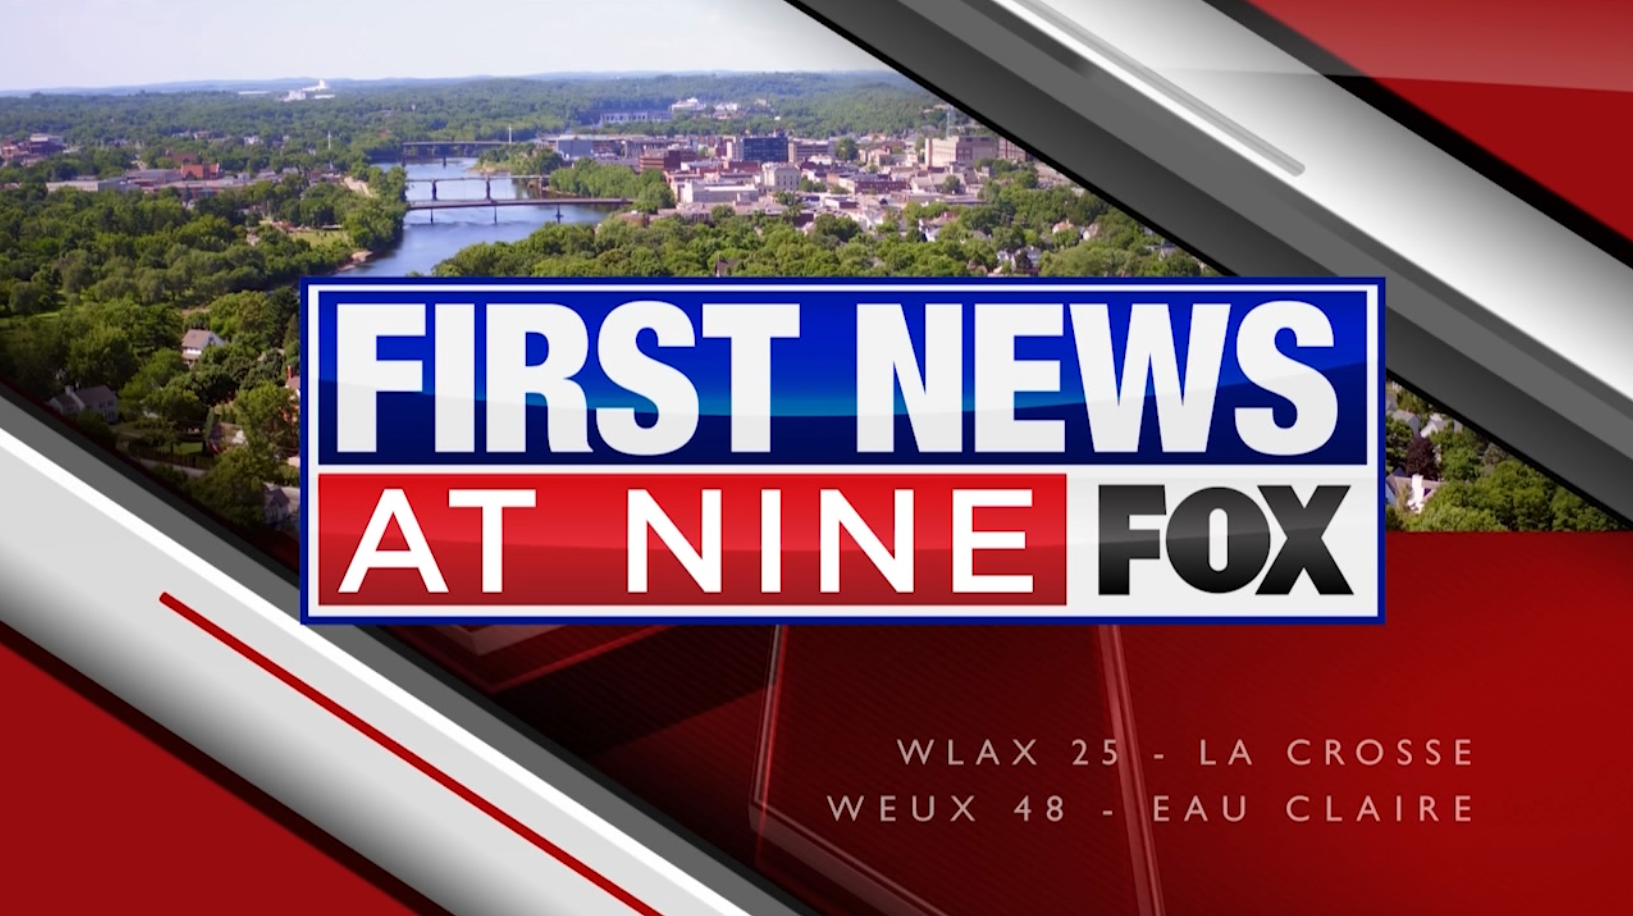 First News at Nine